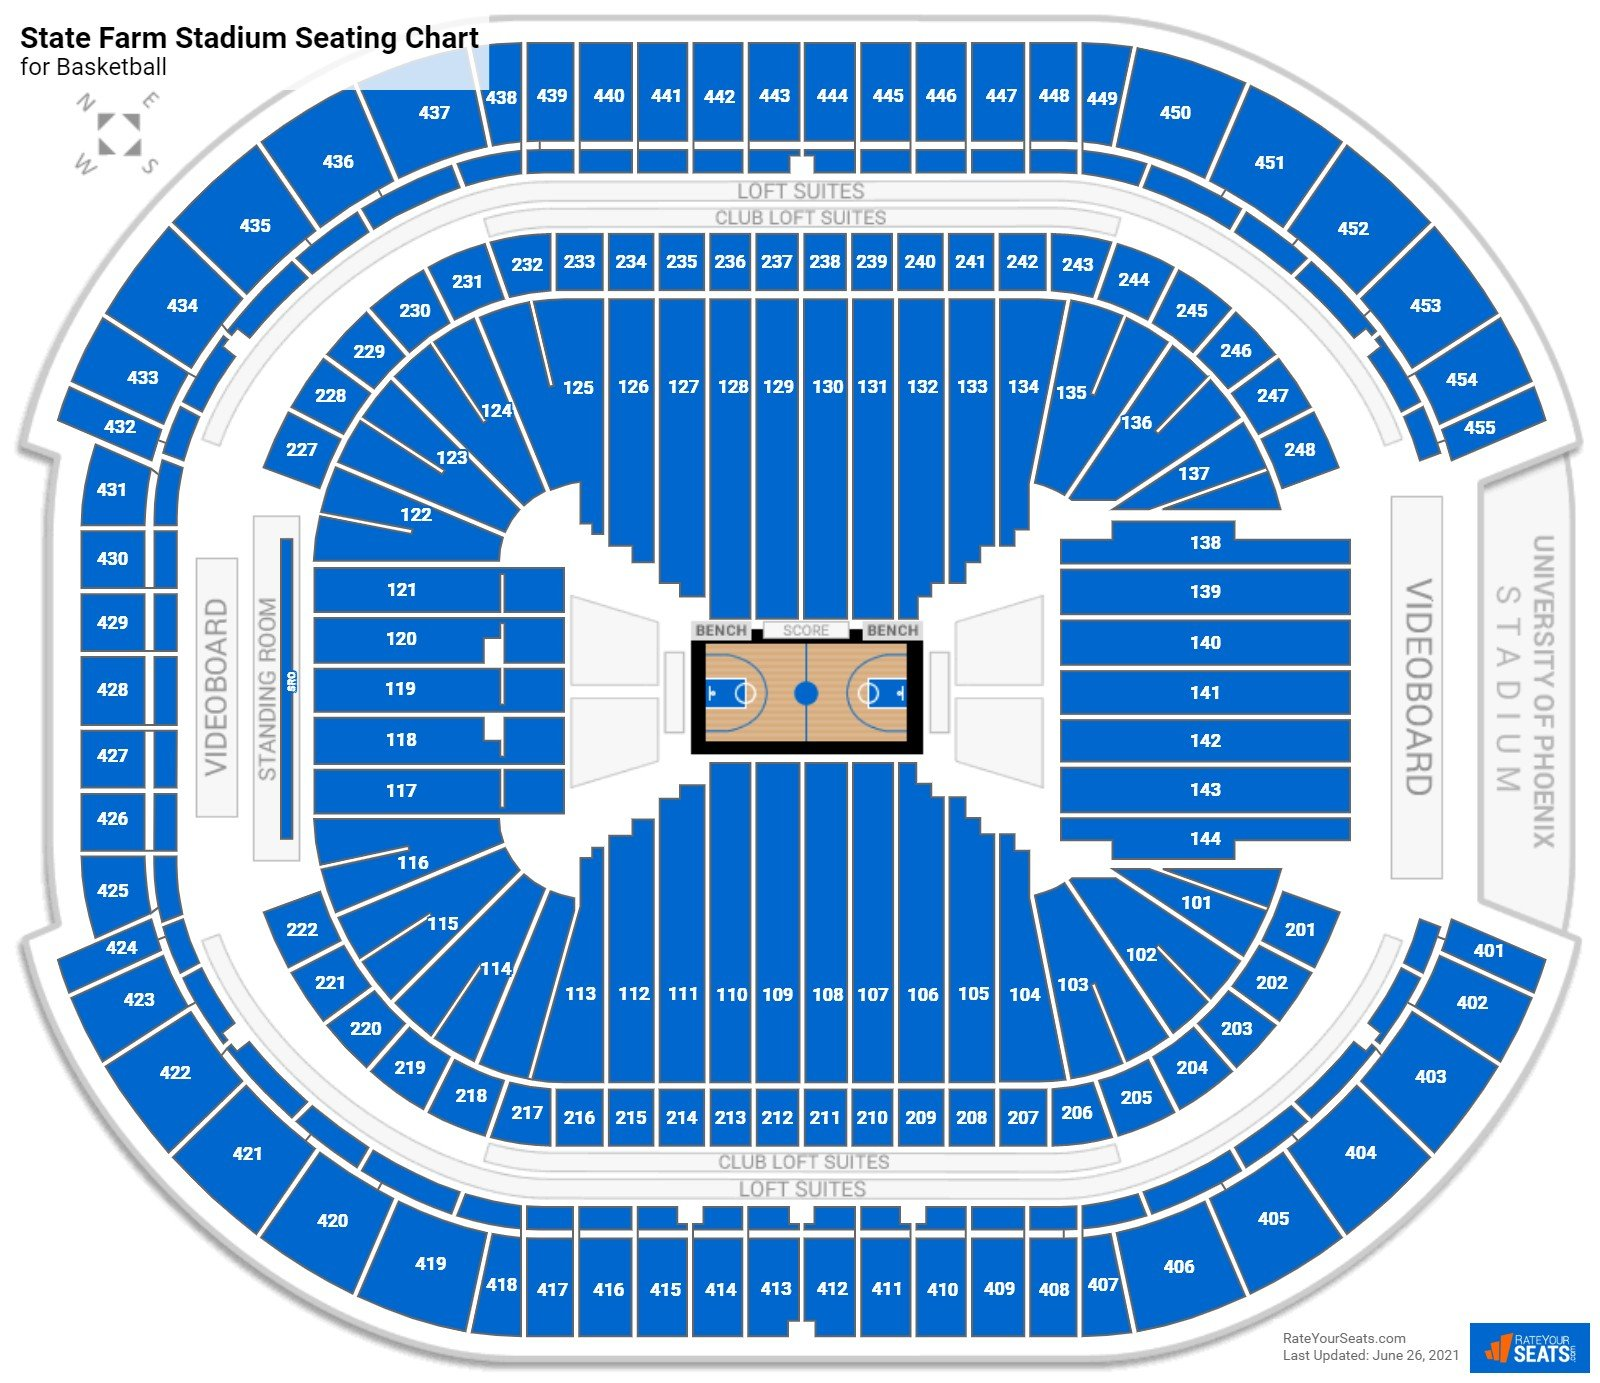 State Farm Stadium Seating Chart for Basketball